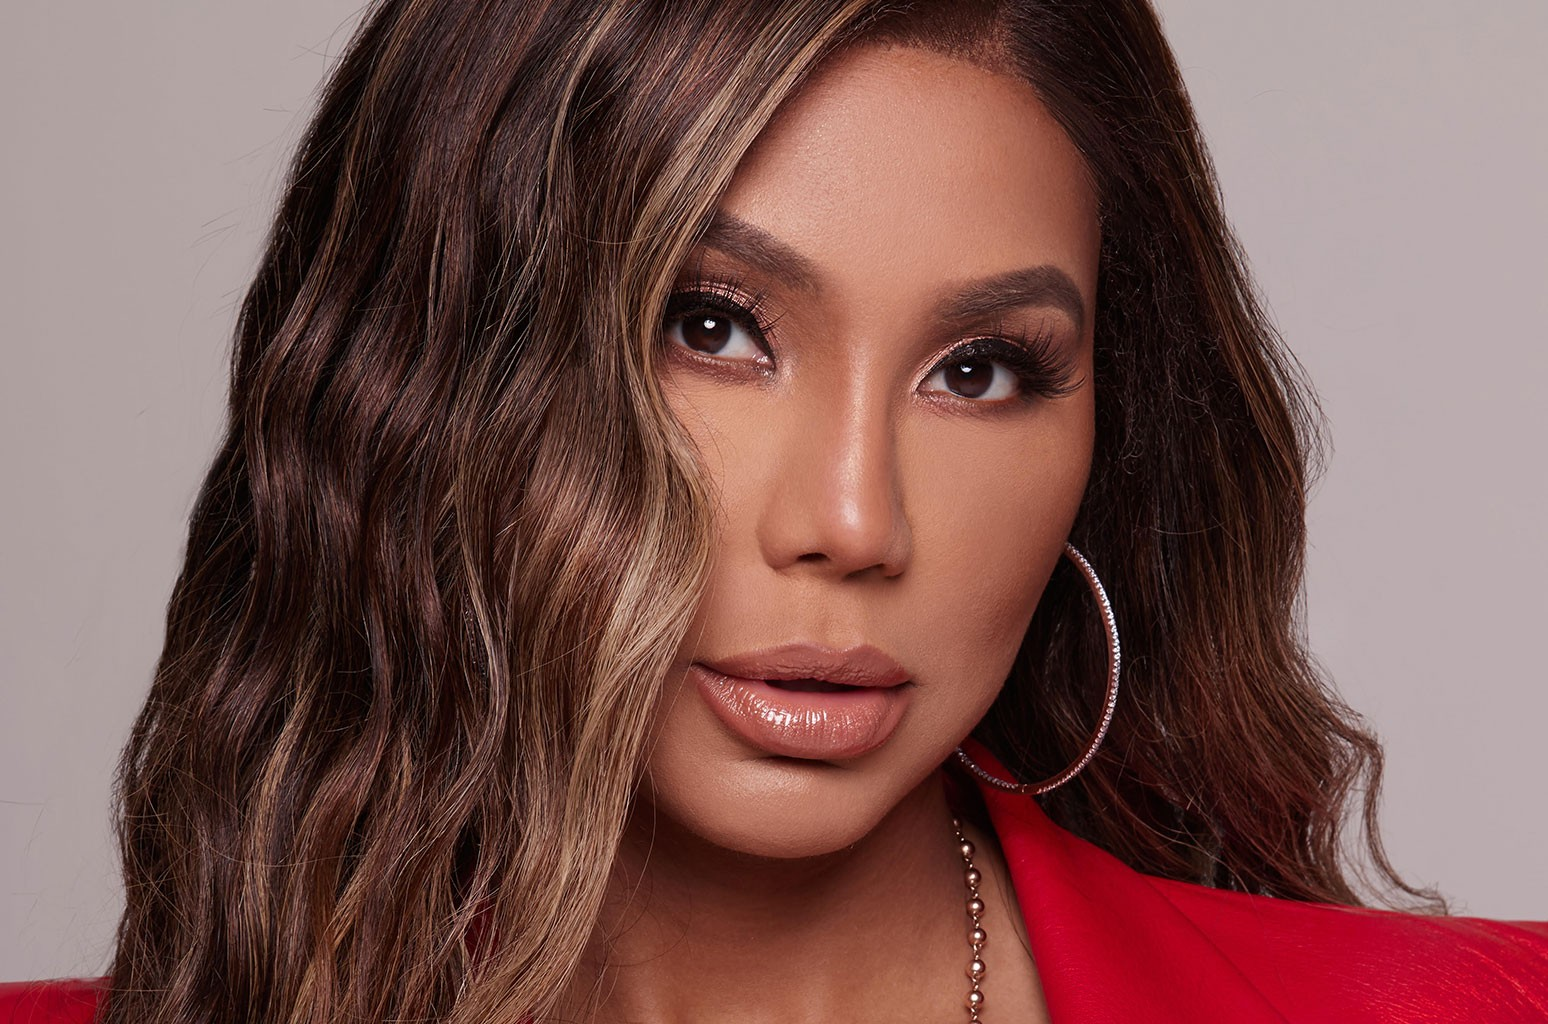 Tamar Braxton Opens Up About How Therapy Has Helped Her After Suicide Attempt – Says She's 'A Different Person!'